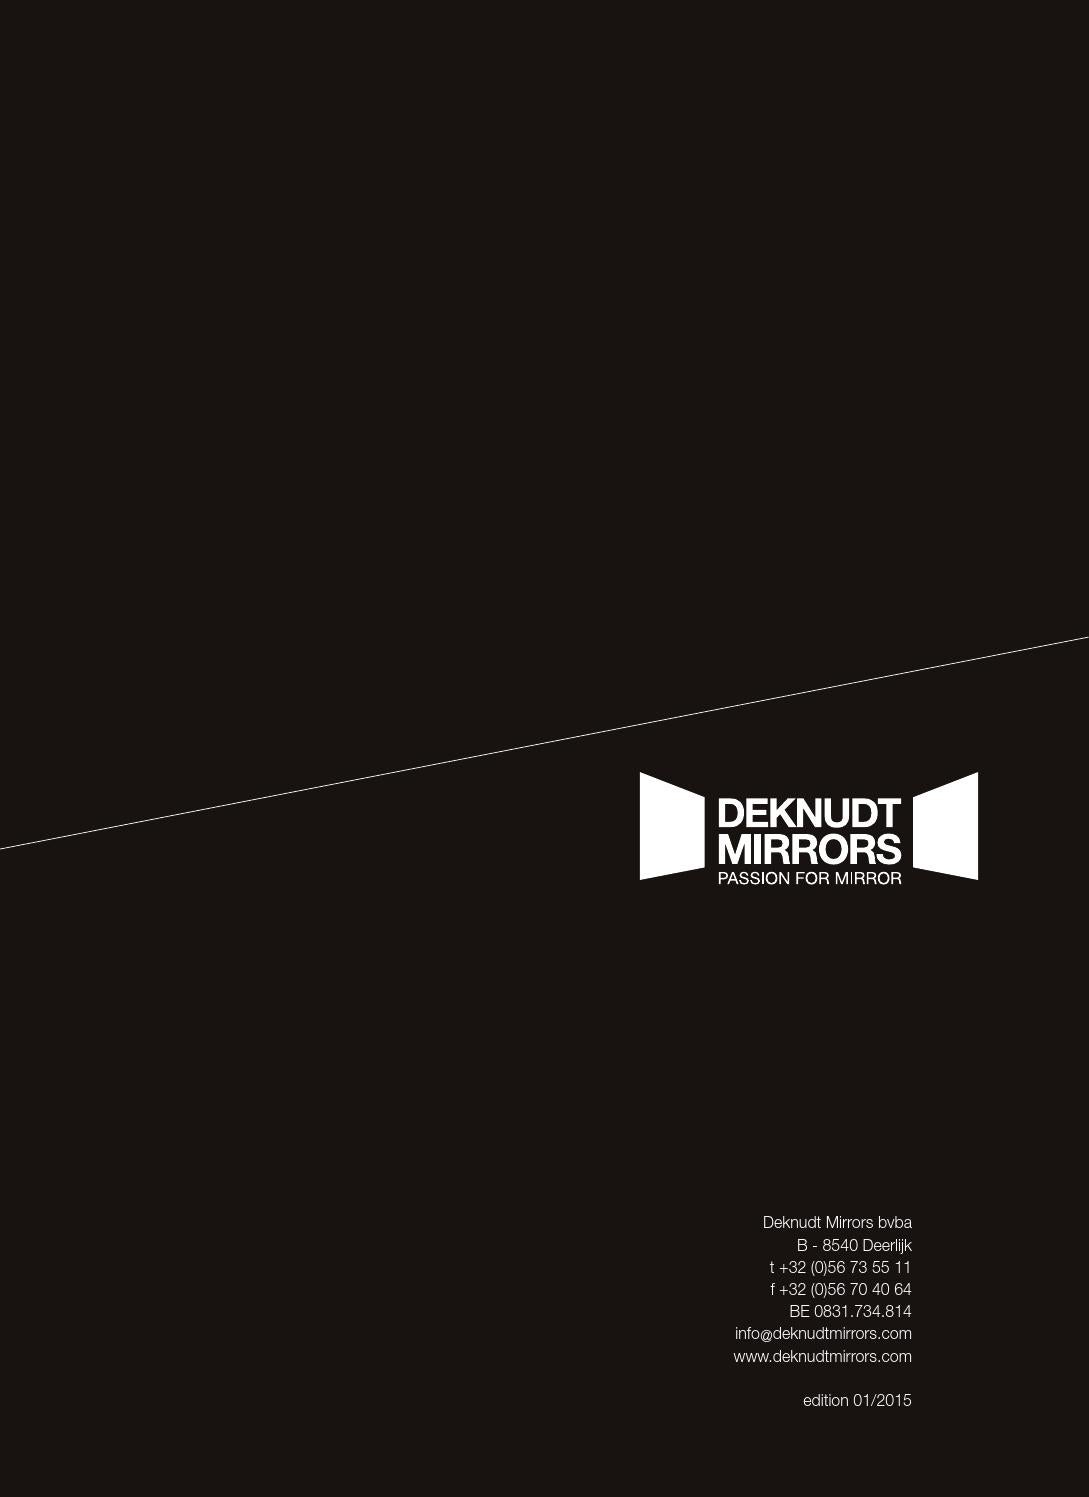 Catalogue Deknudt Mirrors 2015 by DeknudtMirrors - issuu